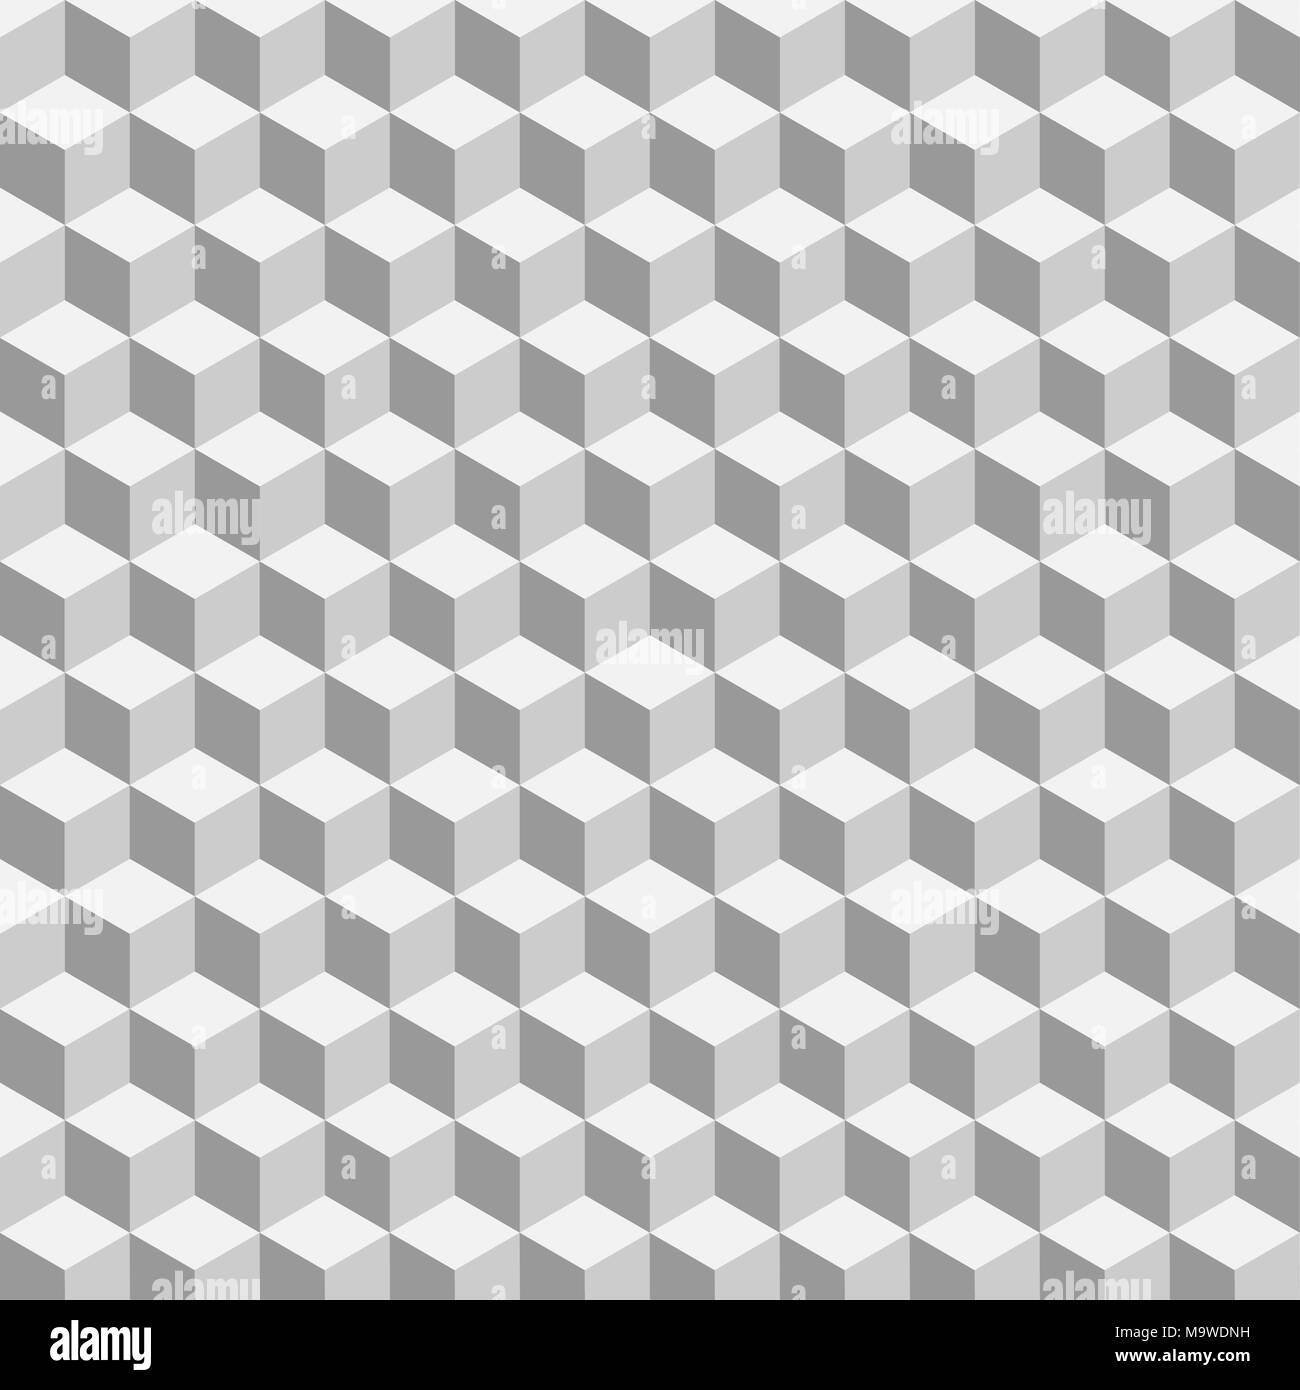 Gray isometric cubes vector pattern background - Stock Image